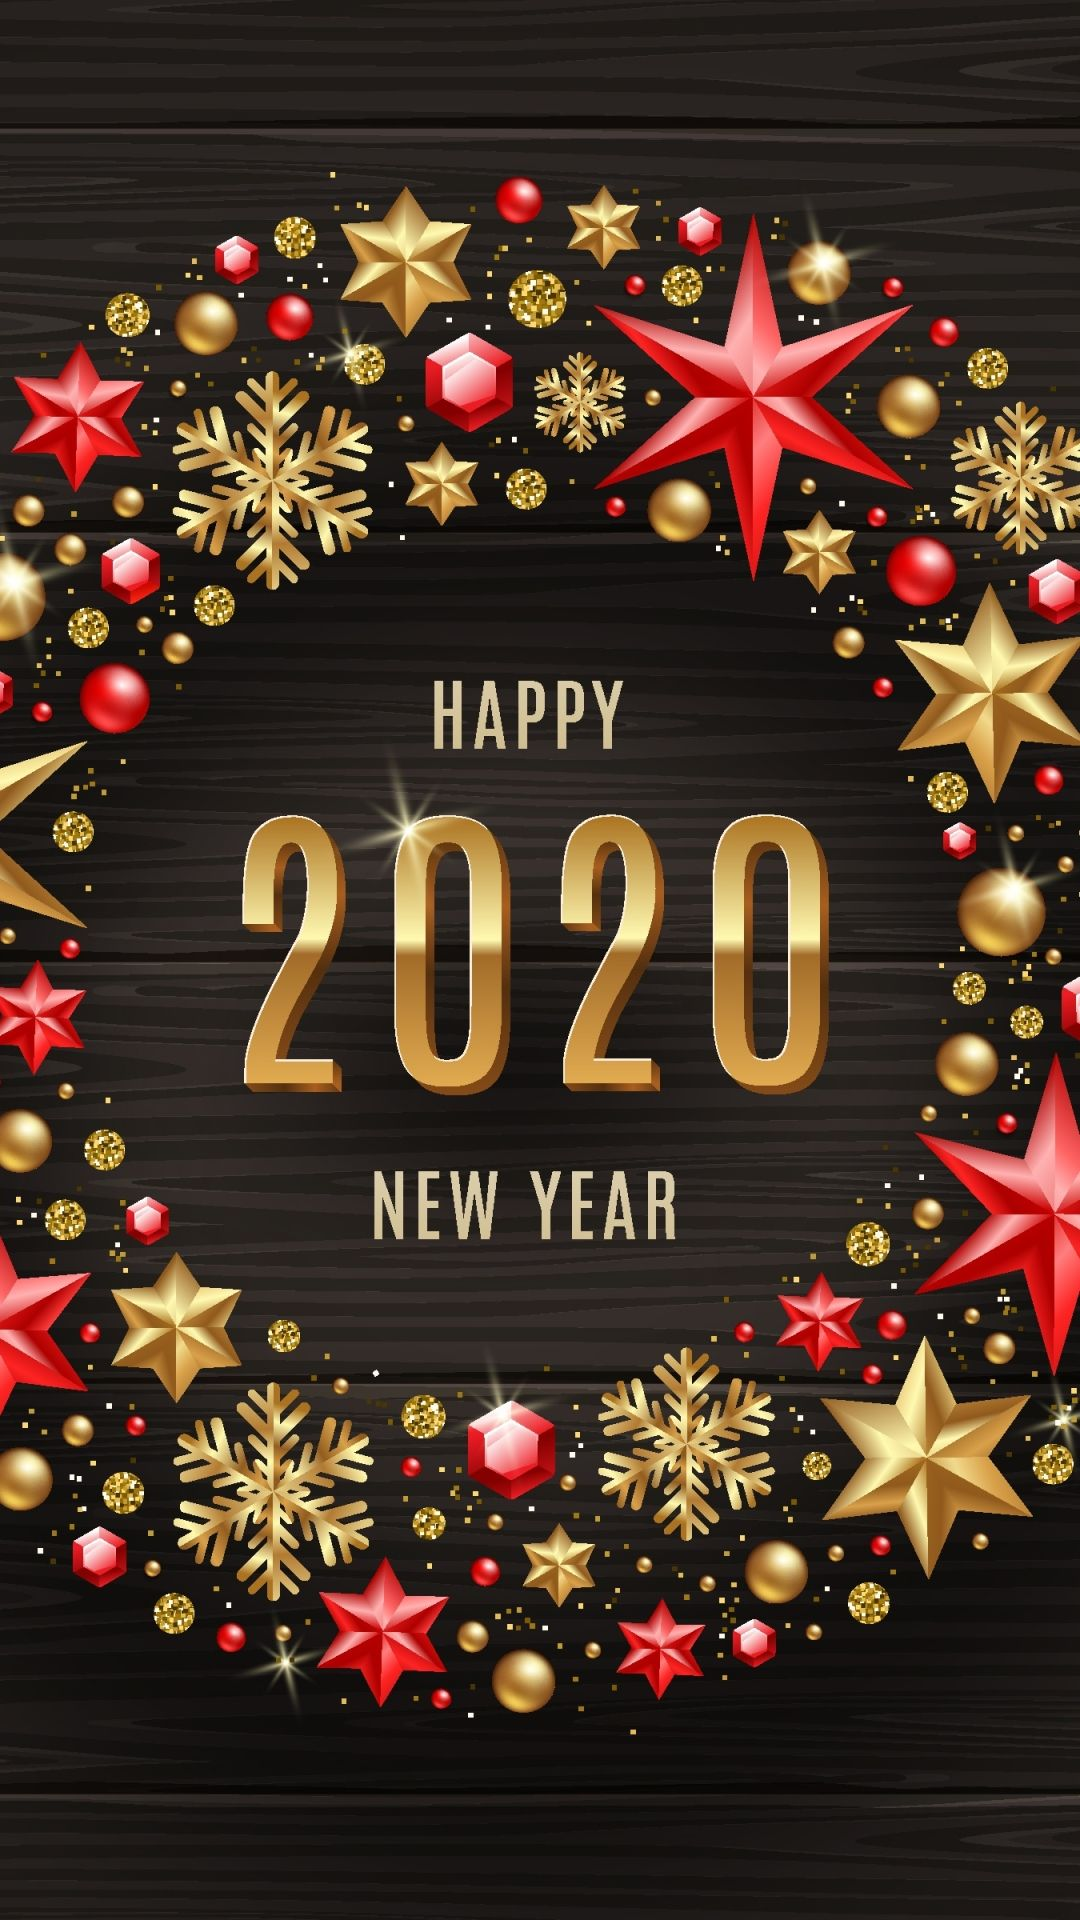 Happy New Year 2020 Wishes Wallpaper New Year Wishes For Whatsapp Happy New Year Wallpaper Happy New Year 2020 New Year 2020